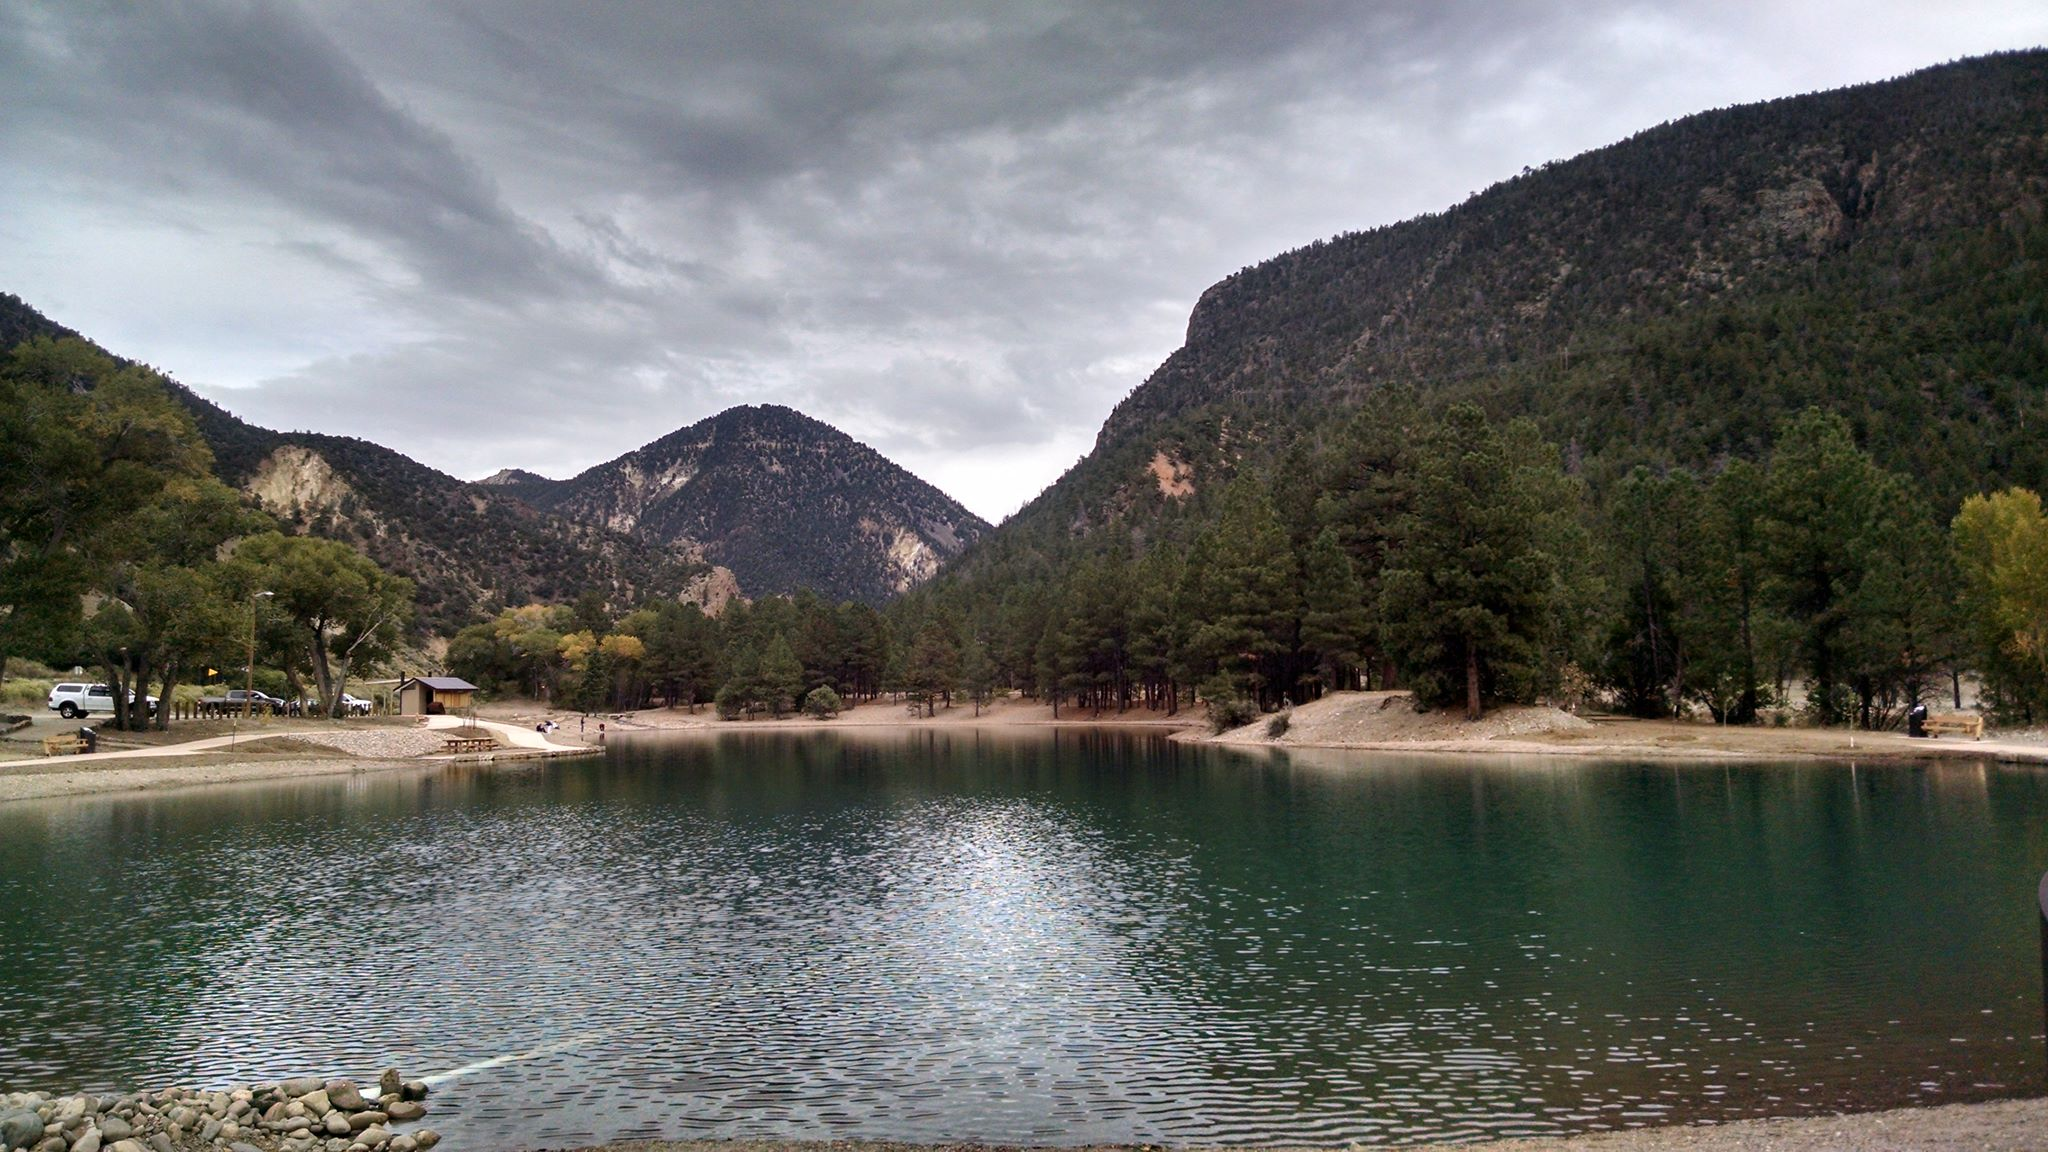 Eagle_Rock_Lake_Questa,_NM